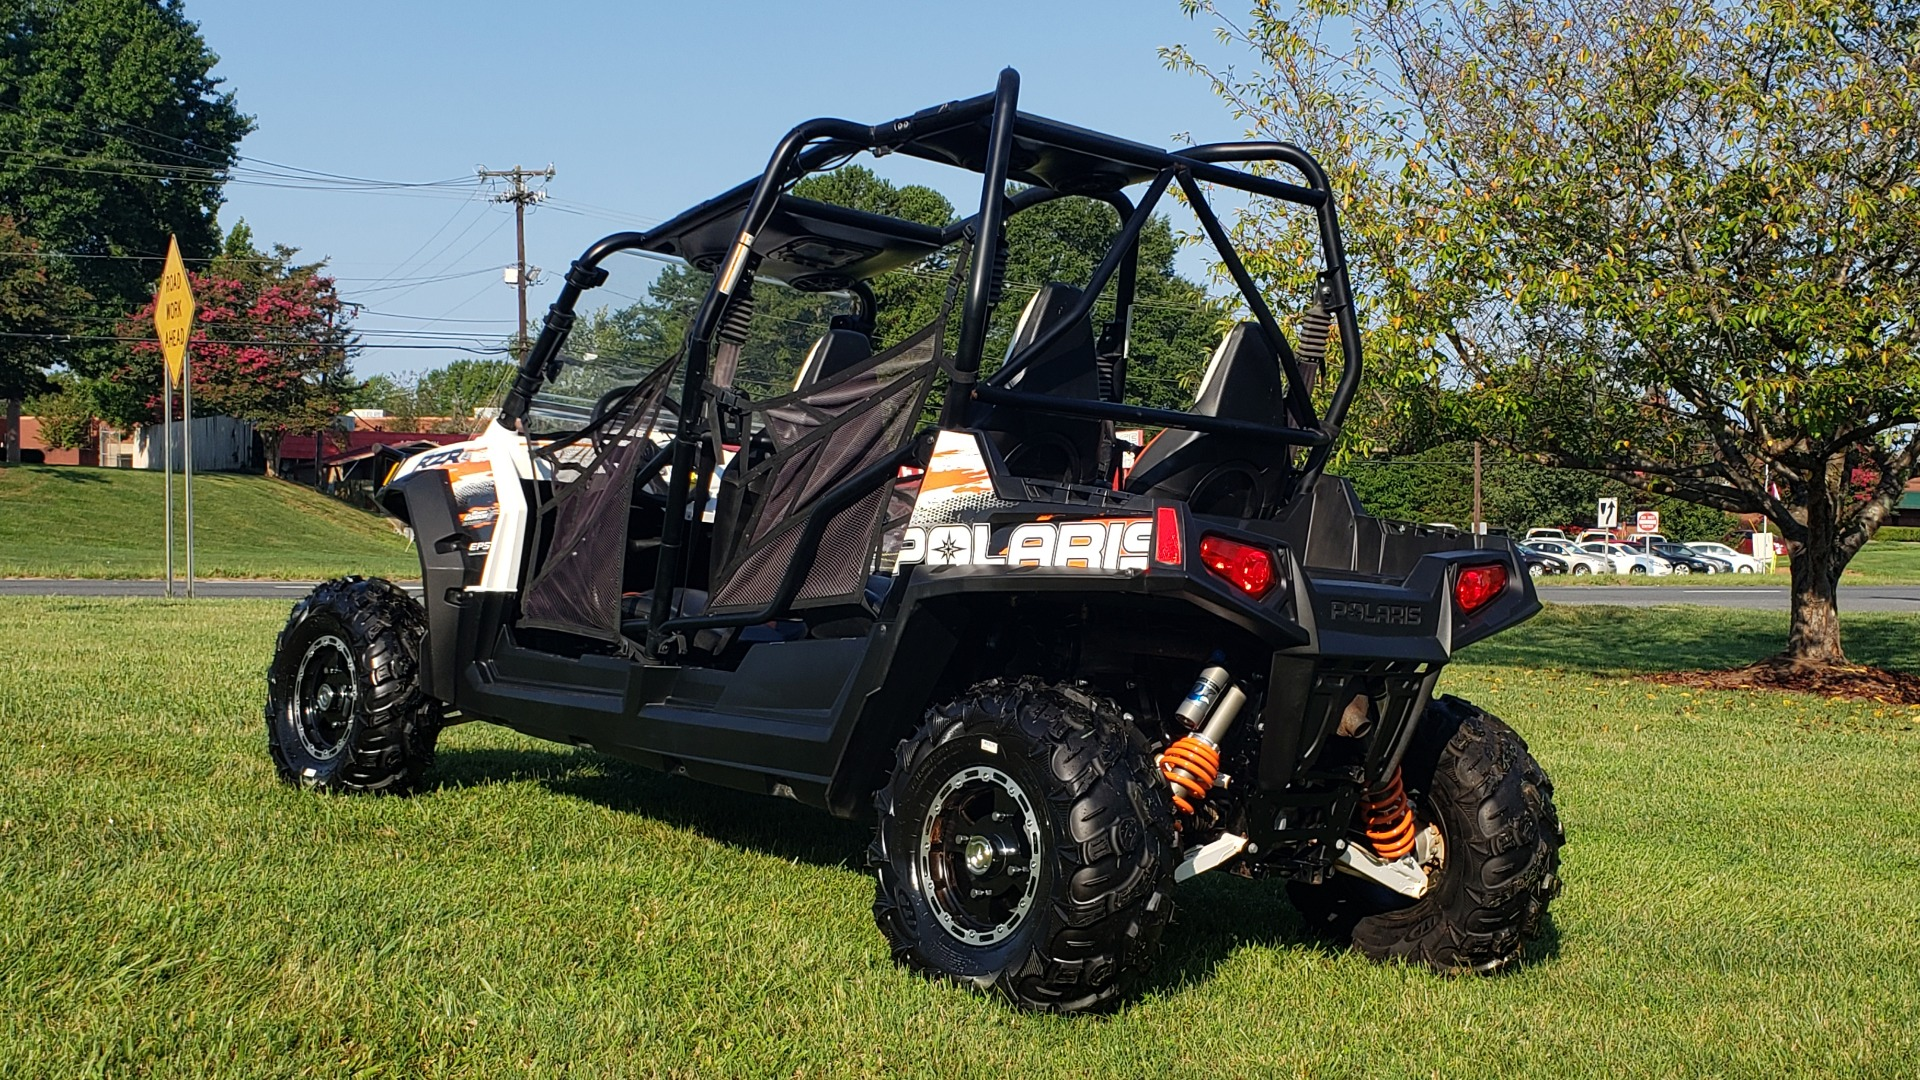 Used 2012 POLARIS RANGER RZR4 / HO 800 EFI / IPHONE CONNECT / SPEAKERS / NEW TIRES for sale Sold at Formula Imports in Charlotte NC 28227 6